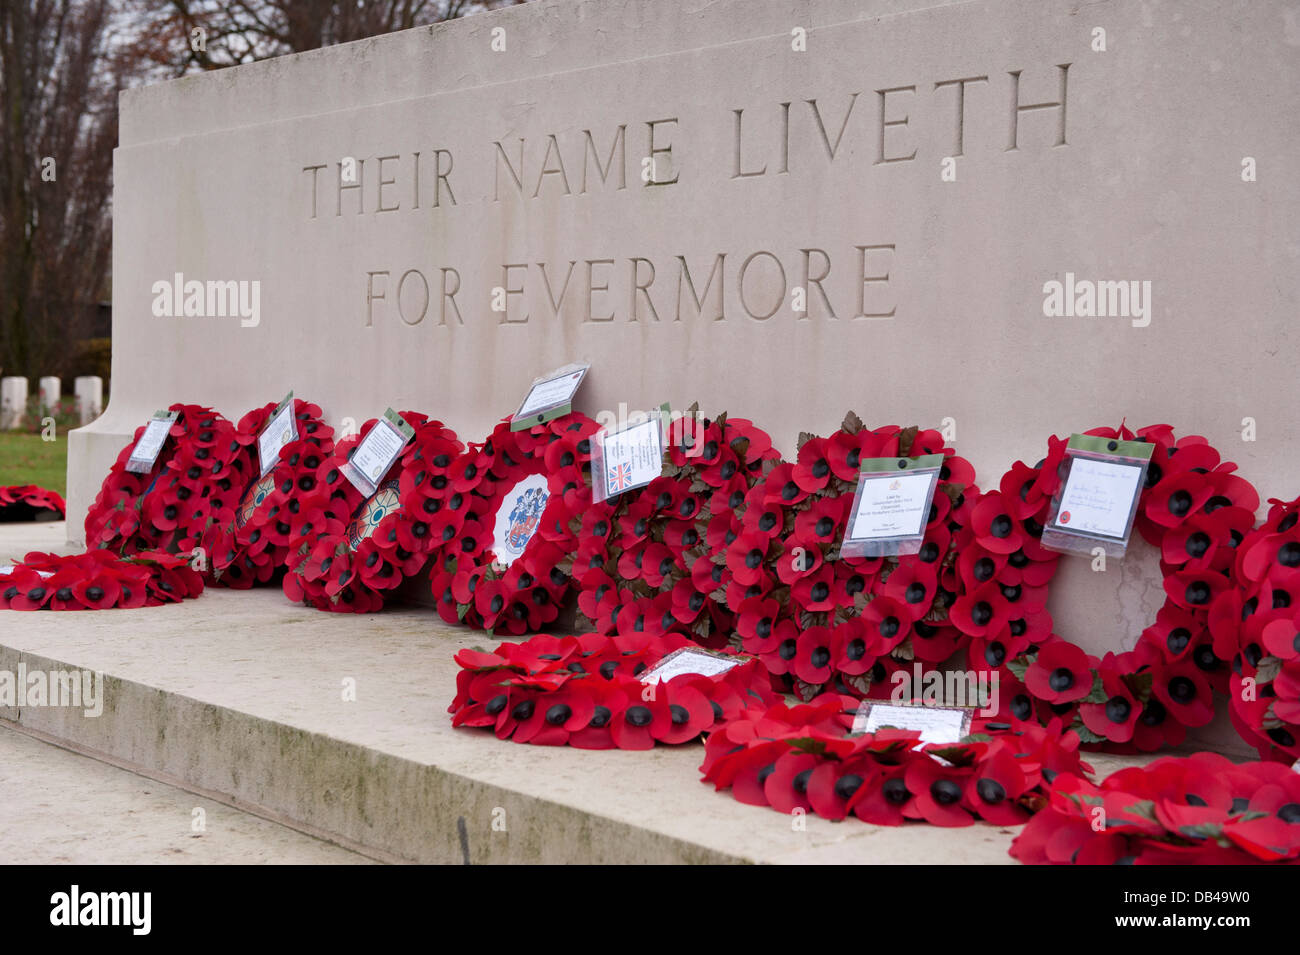 Circular red poppy wreaths on Stone of Remembrance after ceremony & inscription close-up - Stonefall Cemetery, Harrogate, Stock Photo